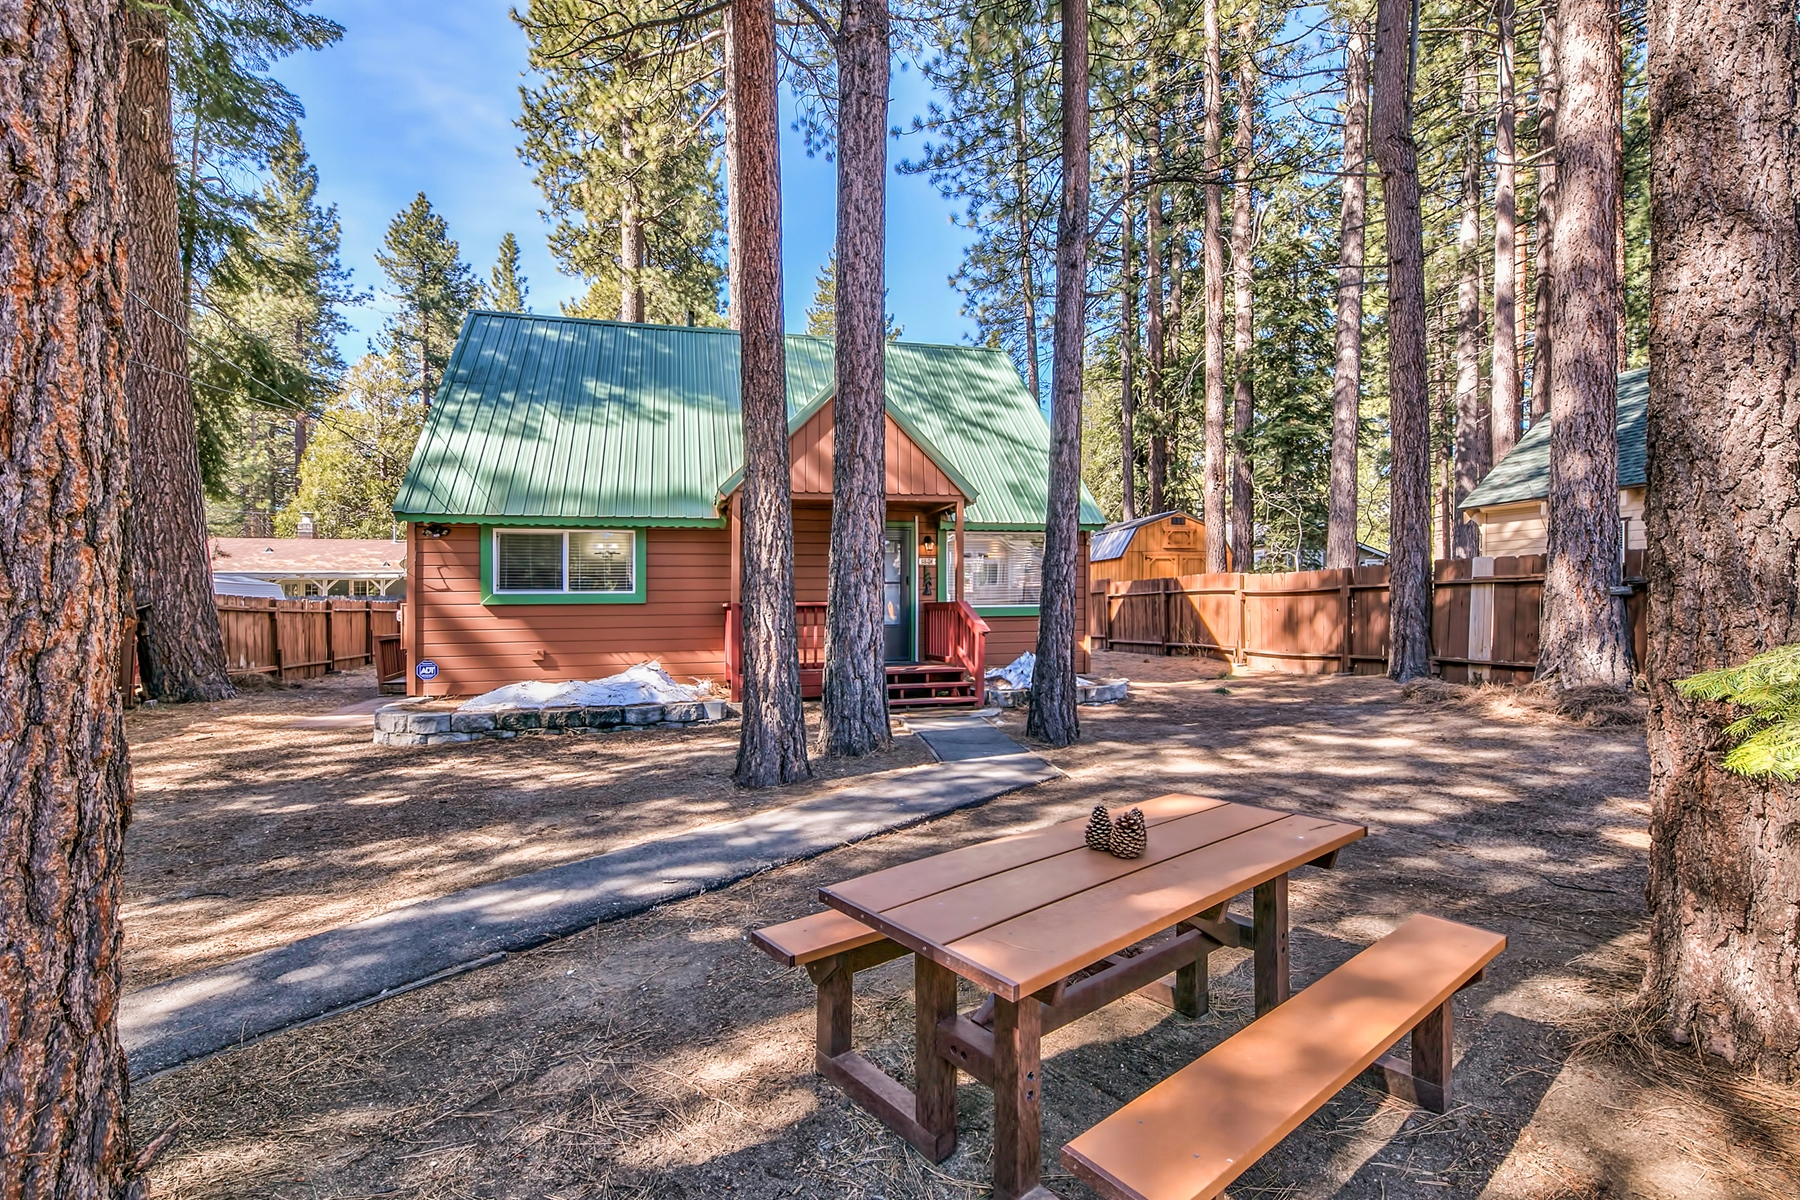 Single Family Home for Active at 880 Tahoe Island Drive, South Lake Drive, CA 96150 880 Tahoe Island Drive South Lake Tahoe, California 96150 United States